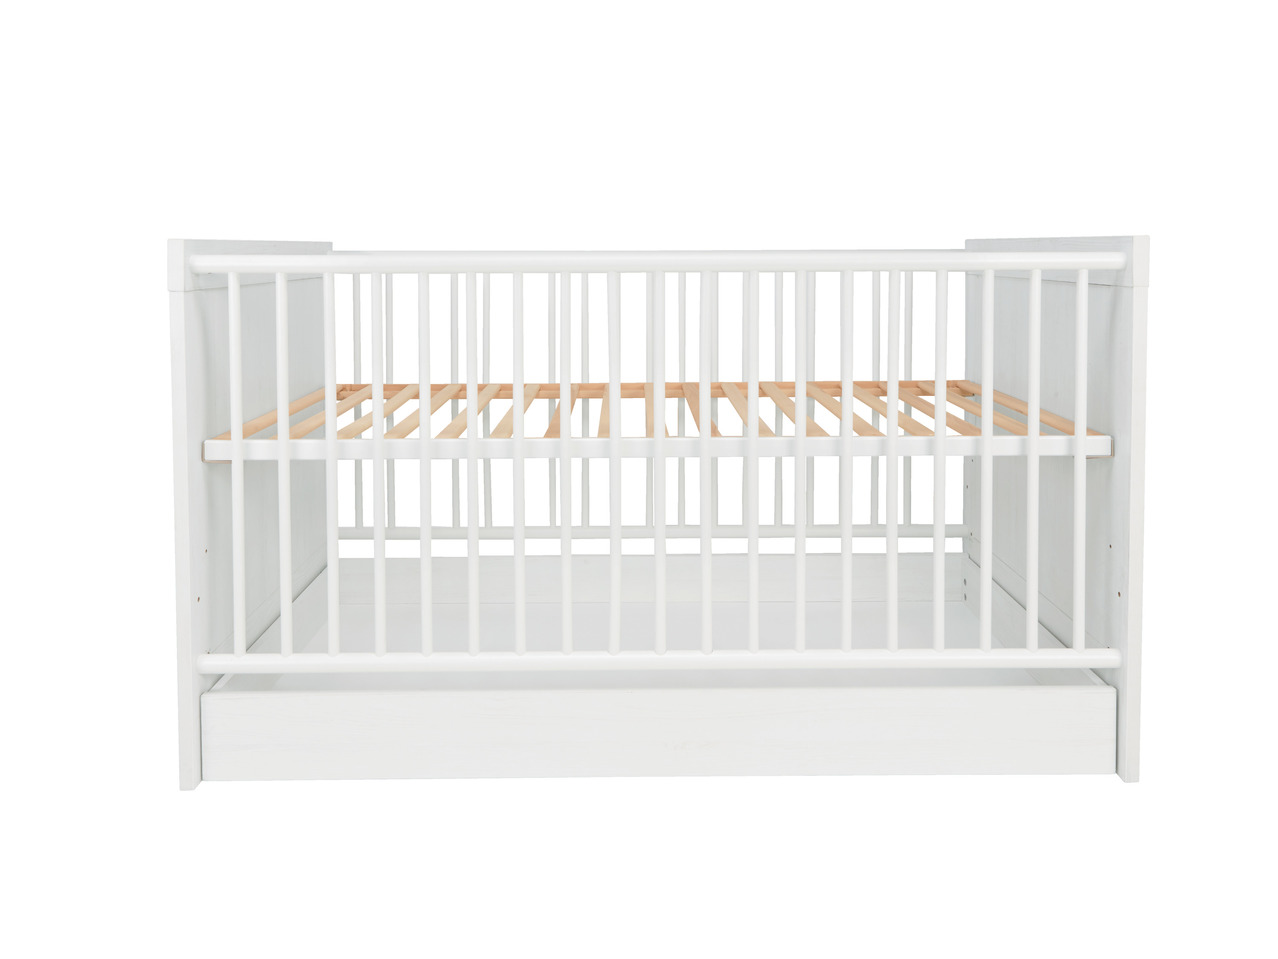 Livarno Living Cot Bed Lidl Northern Ireland Specials Archive